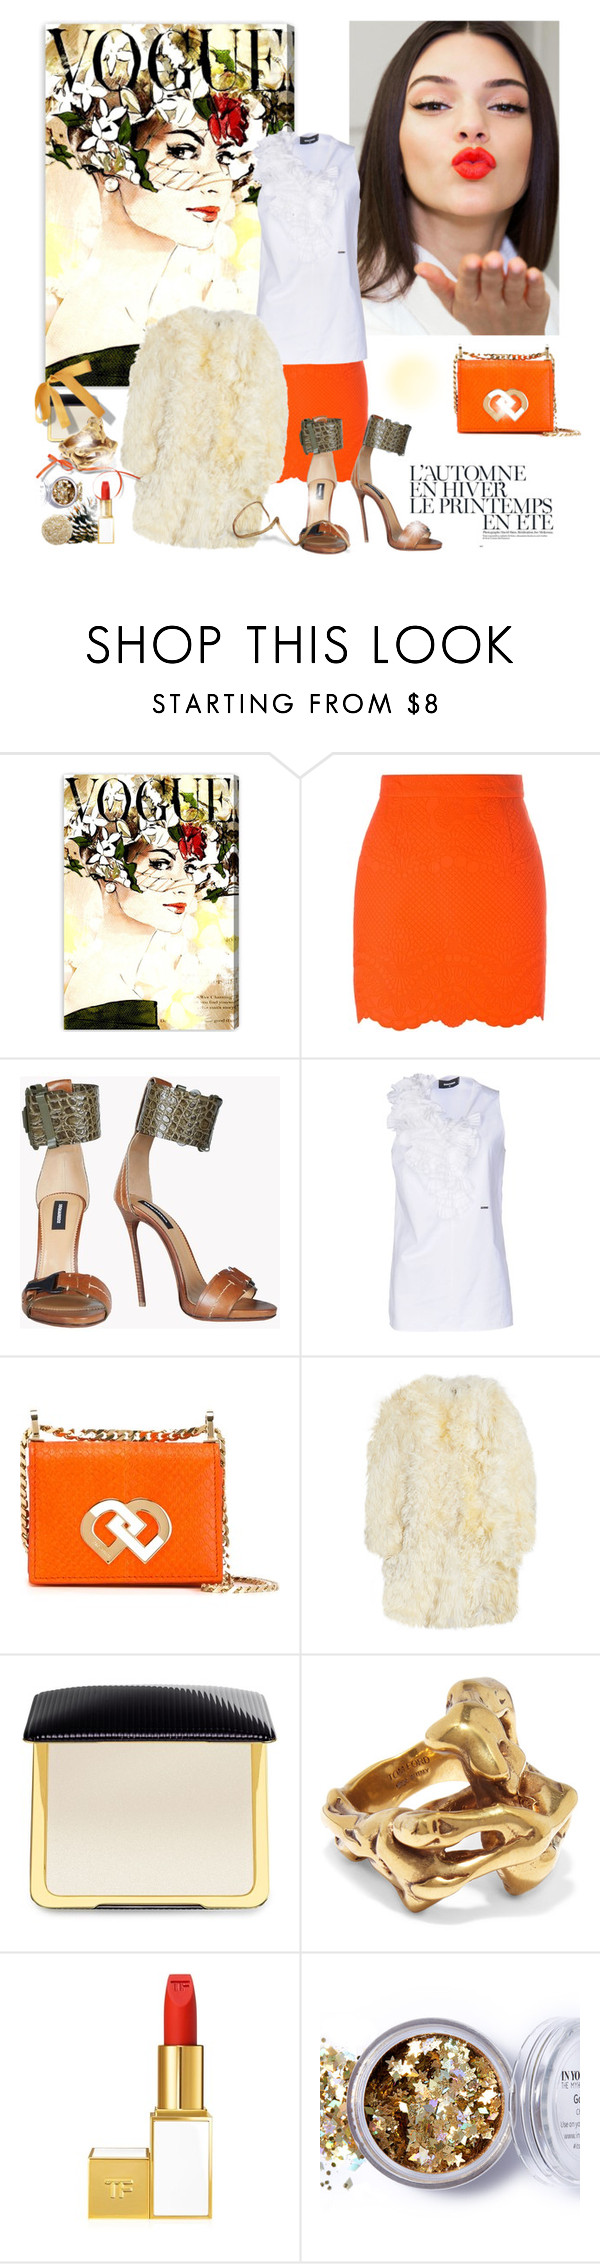 """All Year Long....Sending Love !"" by sue-mes ❤ liked on Polyvore featuring Oliver Gal Artist Co., Estée Lauder, Été Swim, Antonio Berardi, Dsquared2, Yves Saint Laurent, Tom Ford, In Your Dreams and Nails Inc."